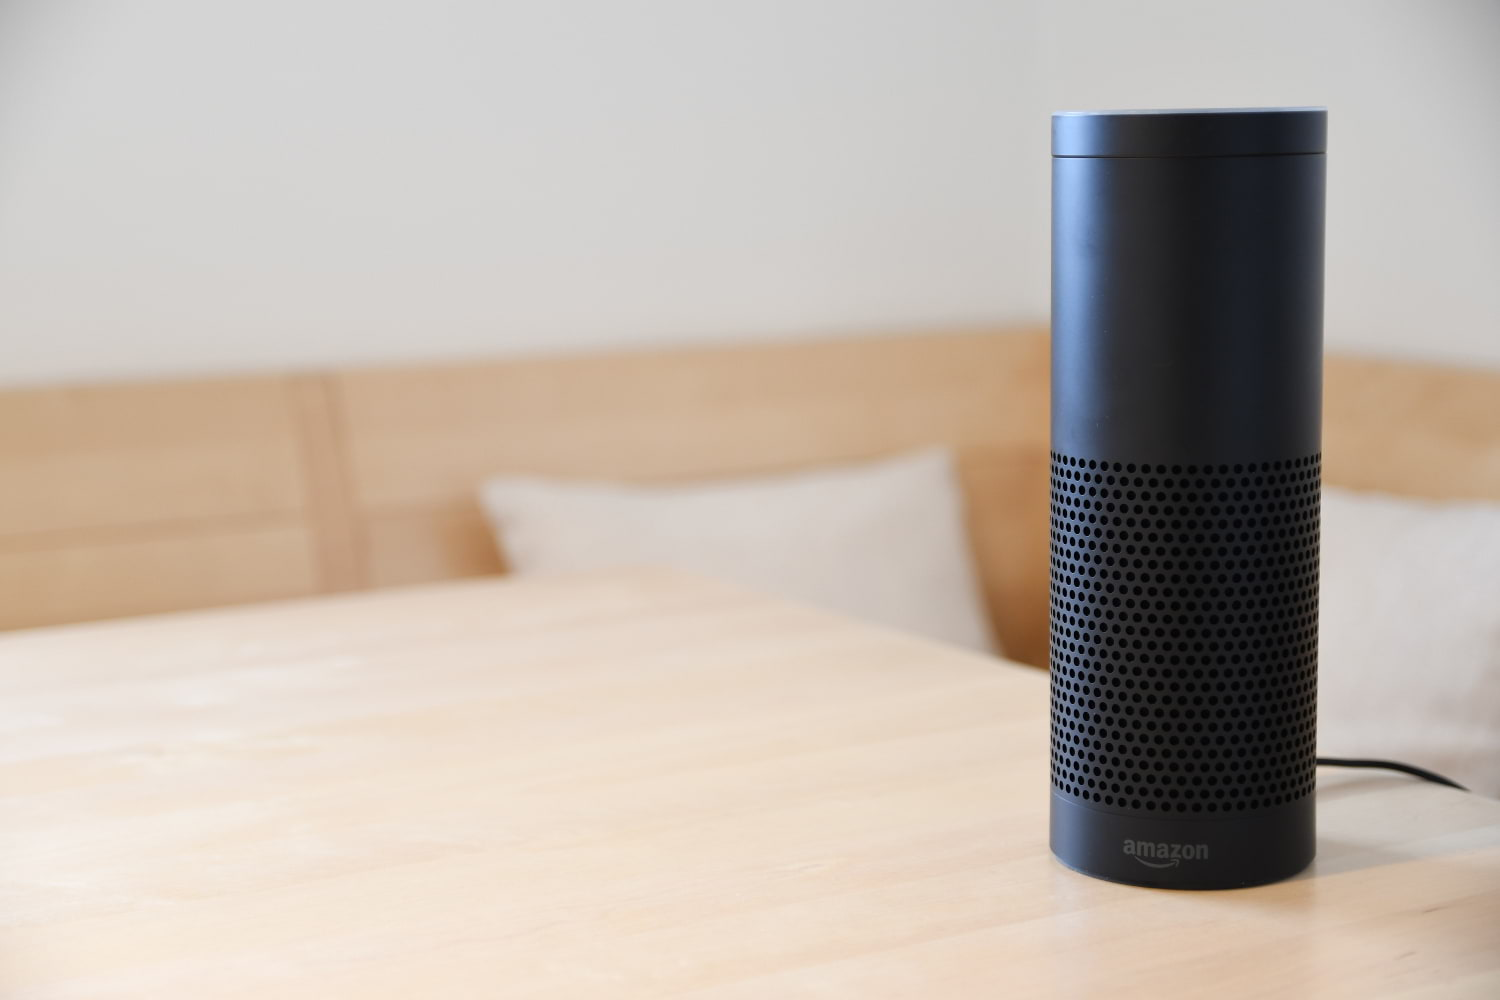 An Amazon Echo Plus on a wooden table in a bright environment.